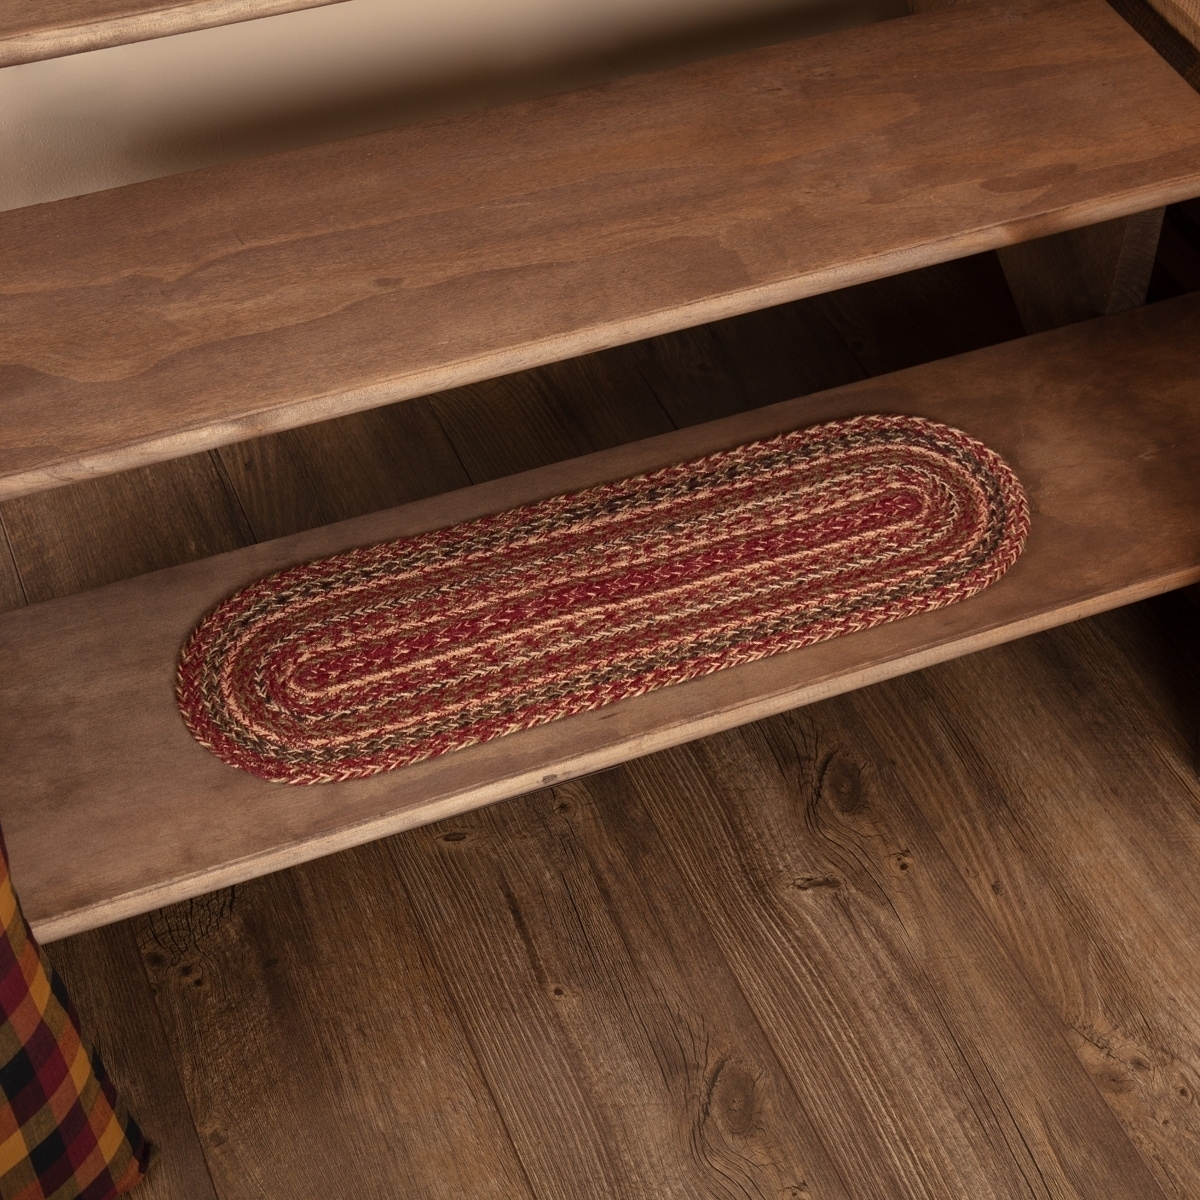 Shop Vhc Cider Mill Burgundy Red Primitive Country Flooring Jute | 8 Inch Carpet Stair Treads | Bullnose Carpet | Wood Stairs | Rubber Backing | Mat | Non Slip Stair